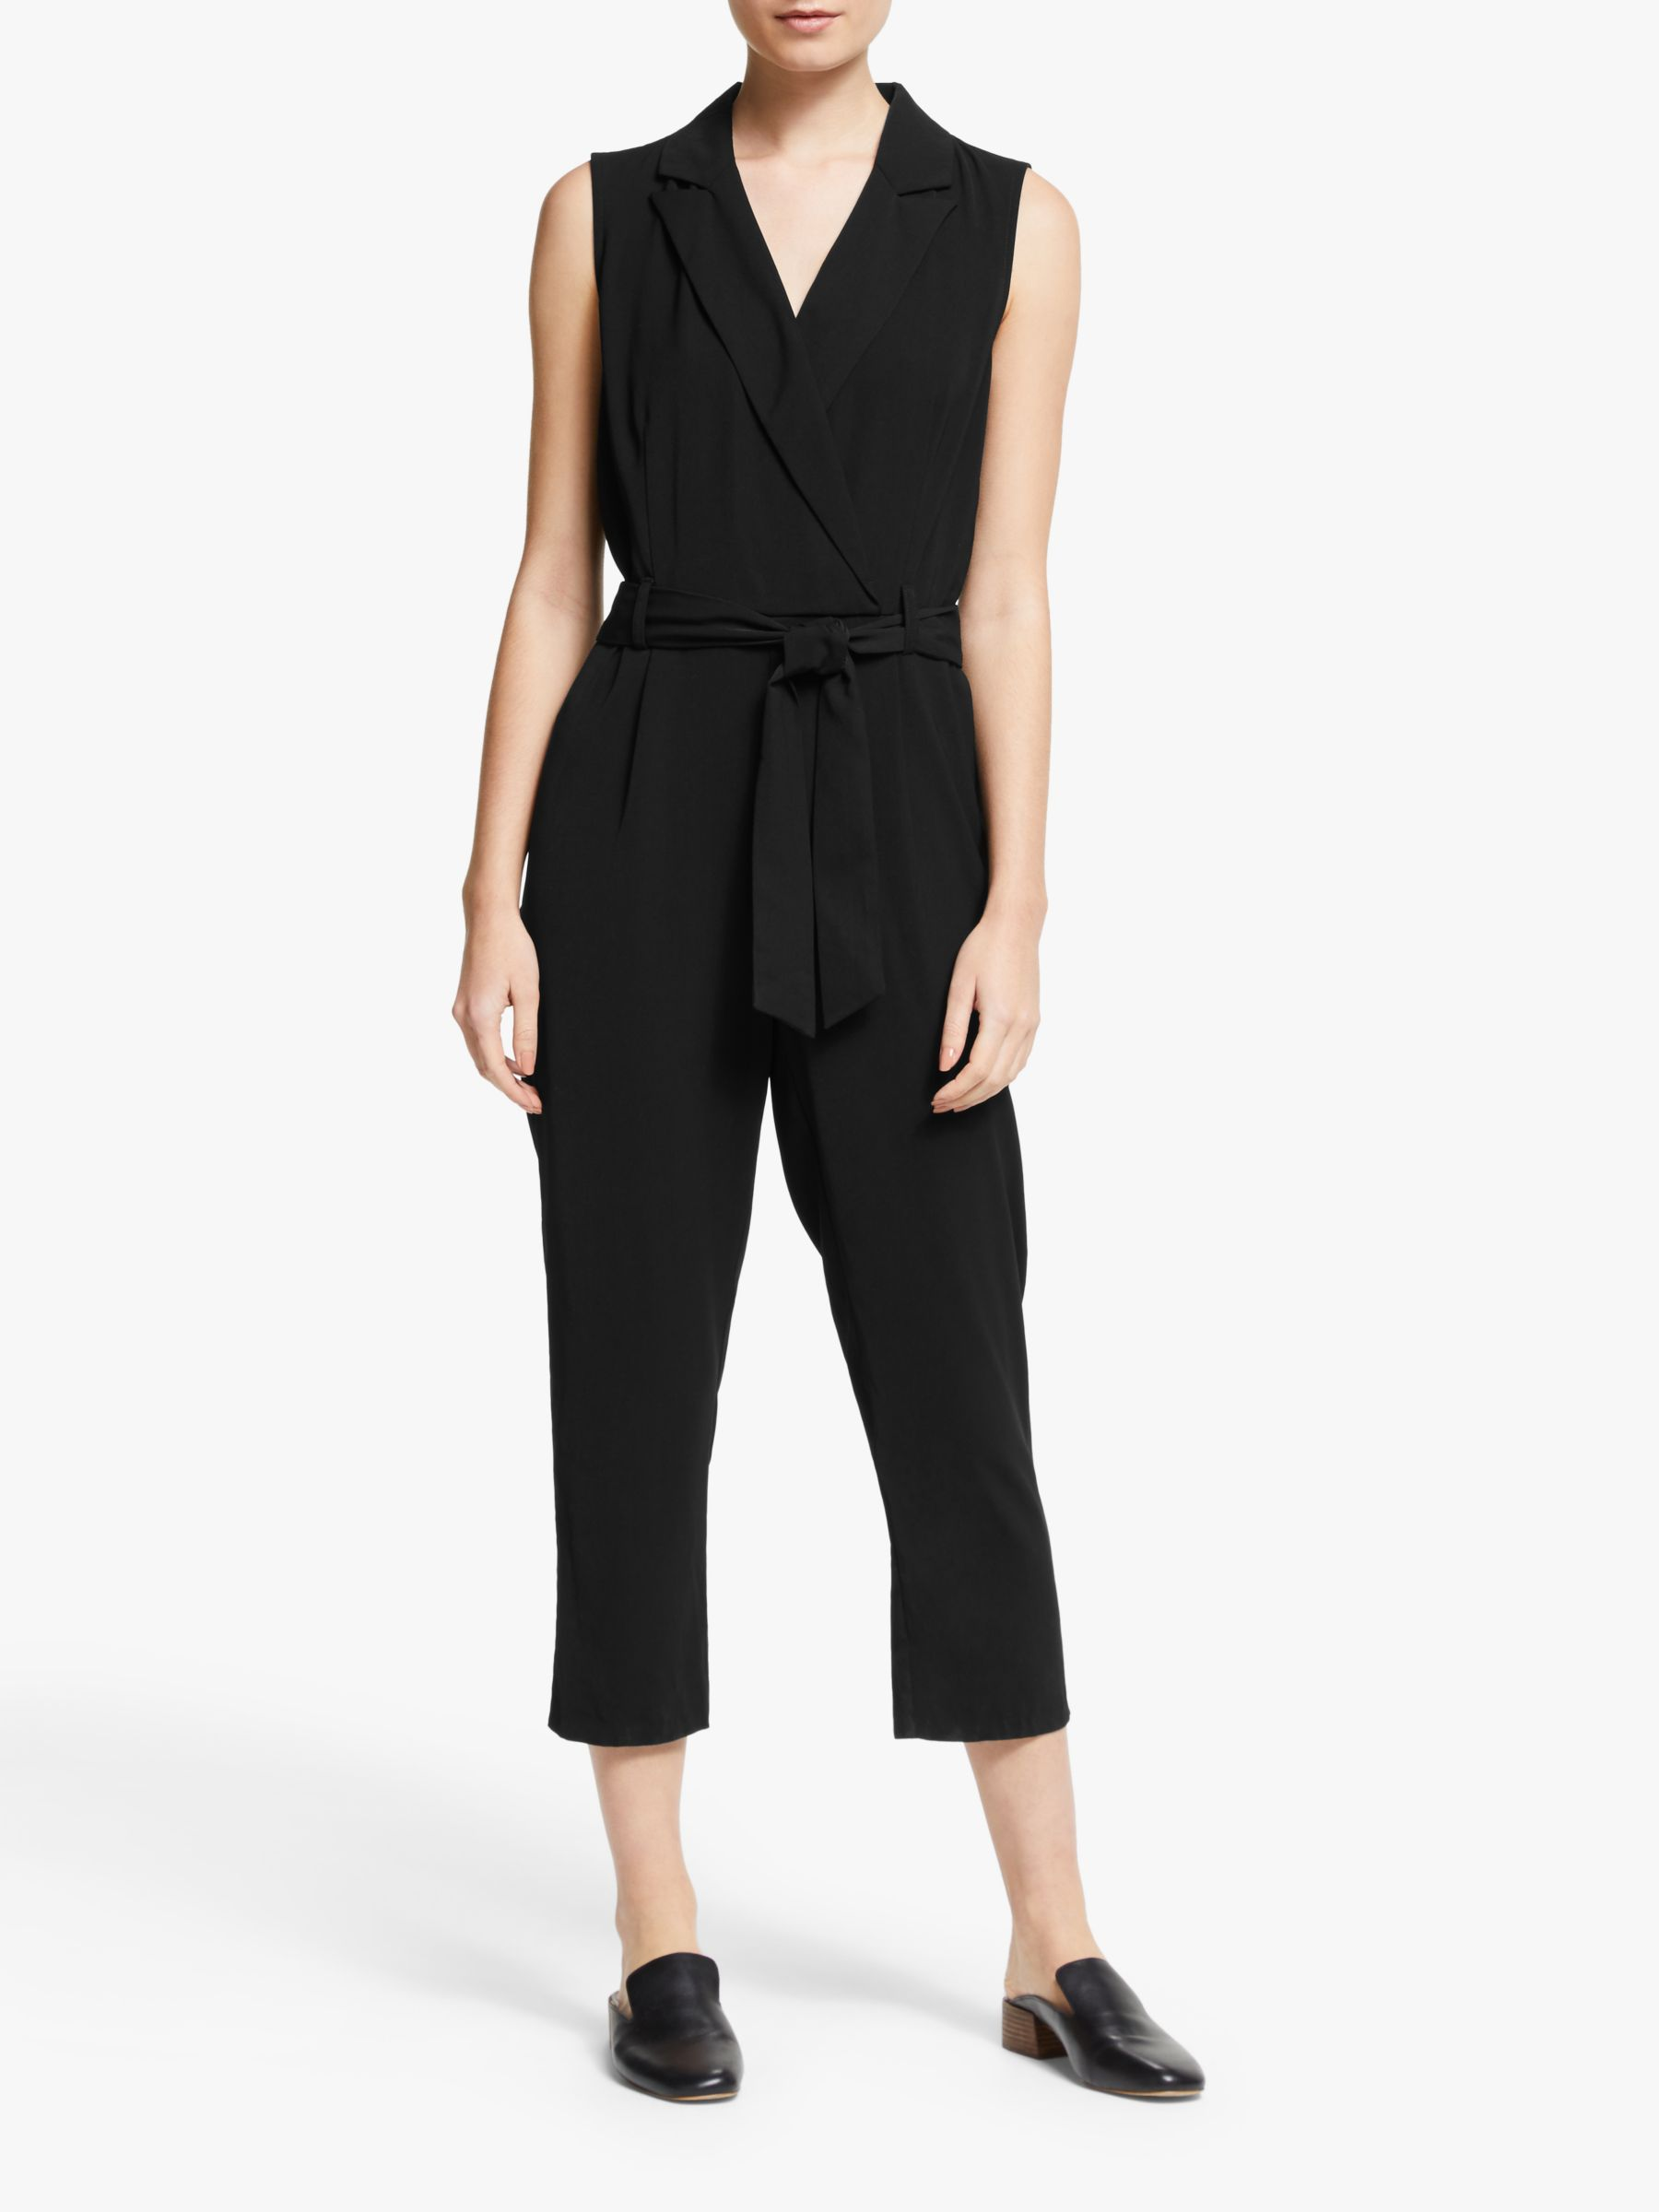 Vero Moda AWARE BY VERO MODA Jolly Jumpsuit, Black